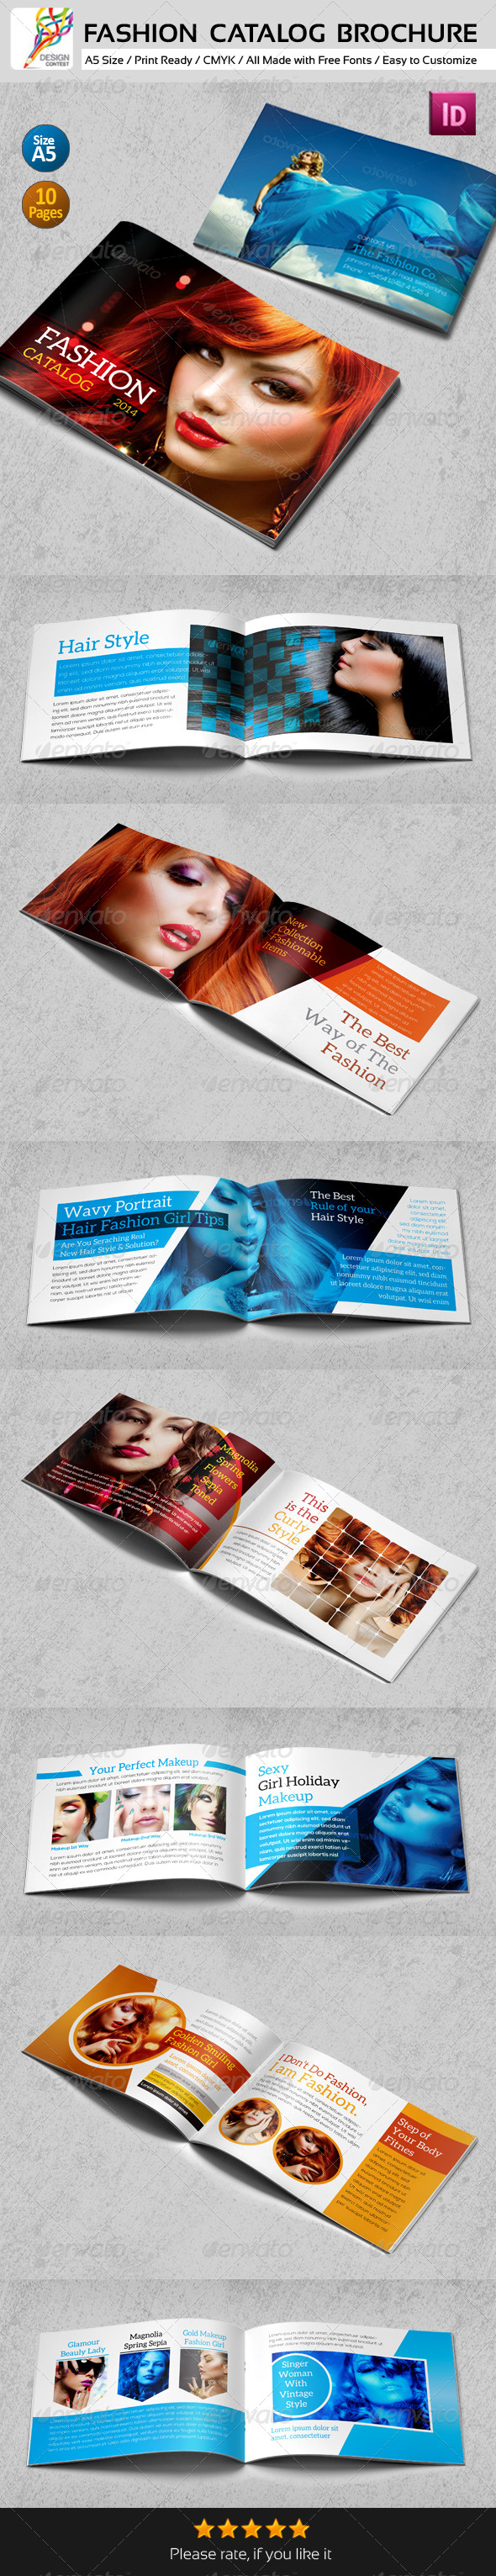 GraphicRiver 16 Pages A5 Fashion Catalog Brochure 5167304